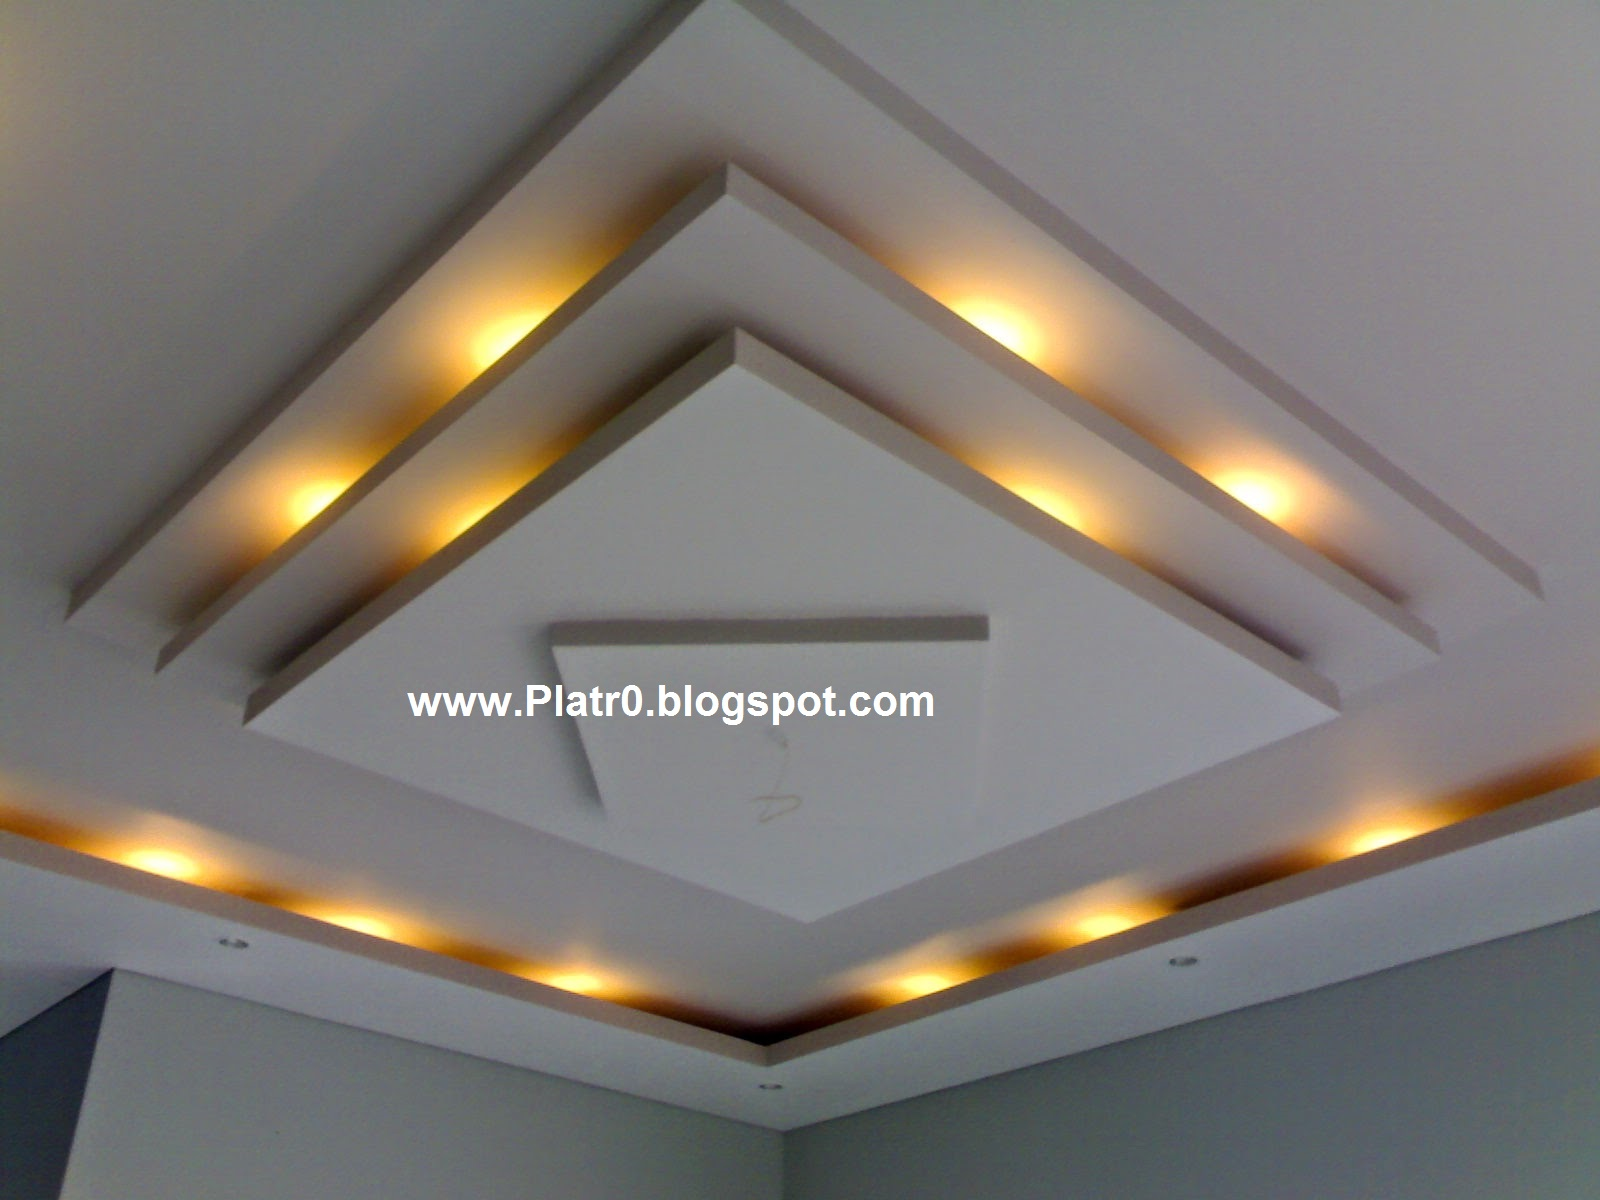 Decore de chambre avec placo platre for Decoration plafond en platre